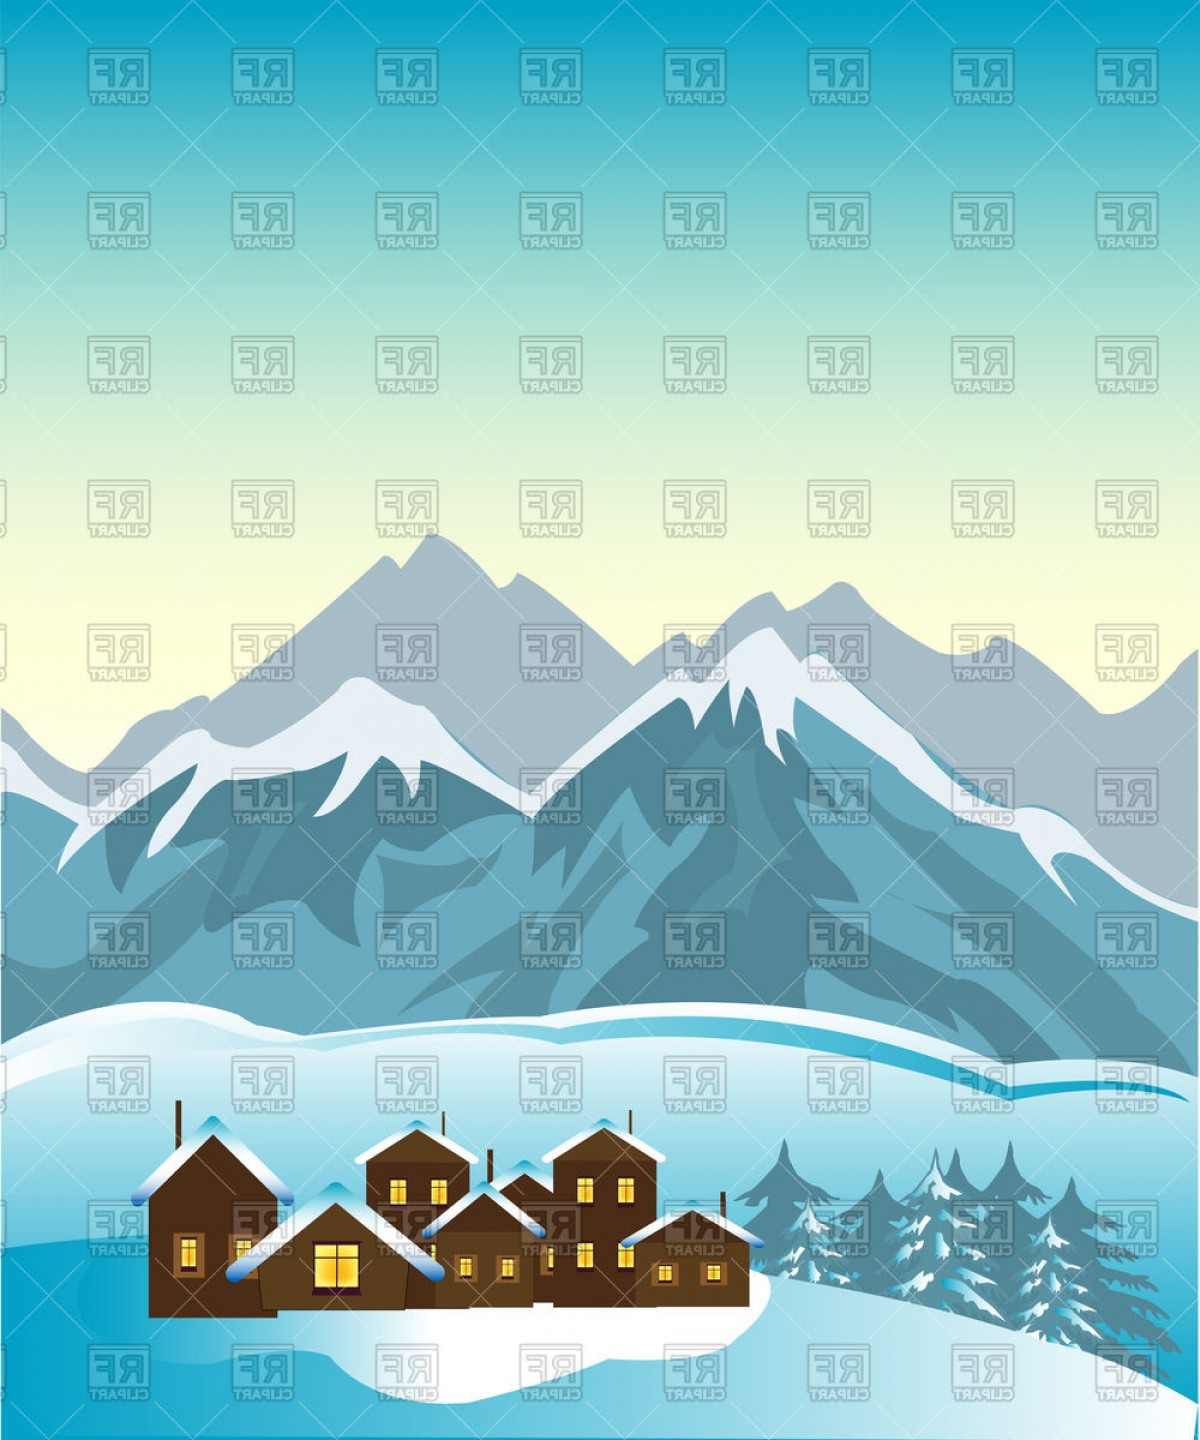 Clipart of high mountain ranges svg Small Village Beside Foots Of The High Mountains Ski Resort Vector ... svg